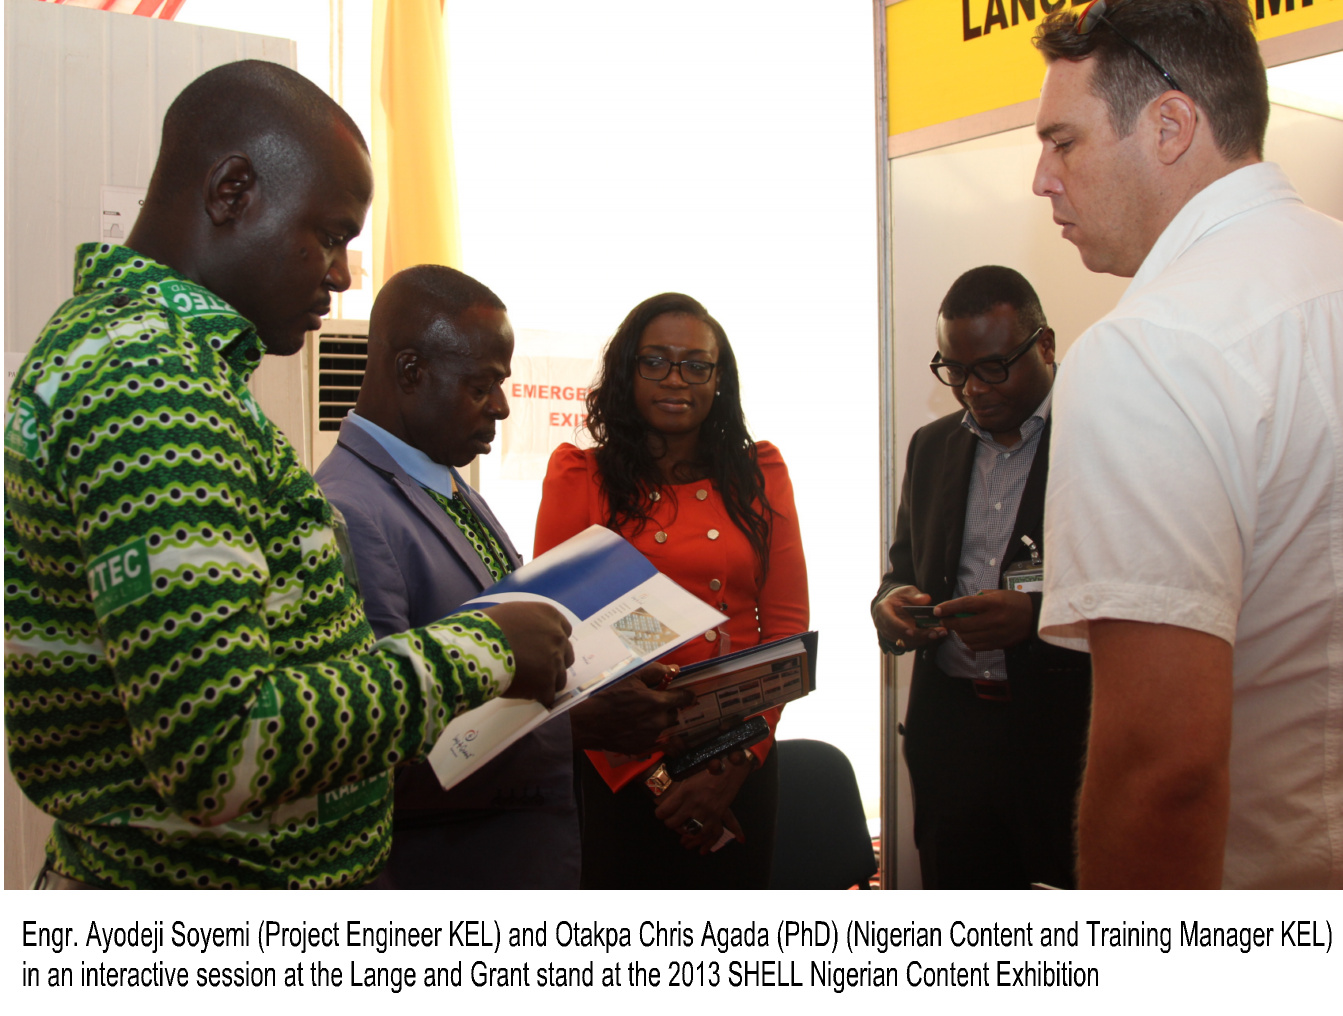 An Interactive session at the 2013 SHELL Nigerian Content Exhibition